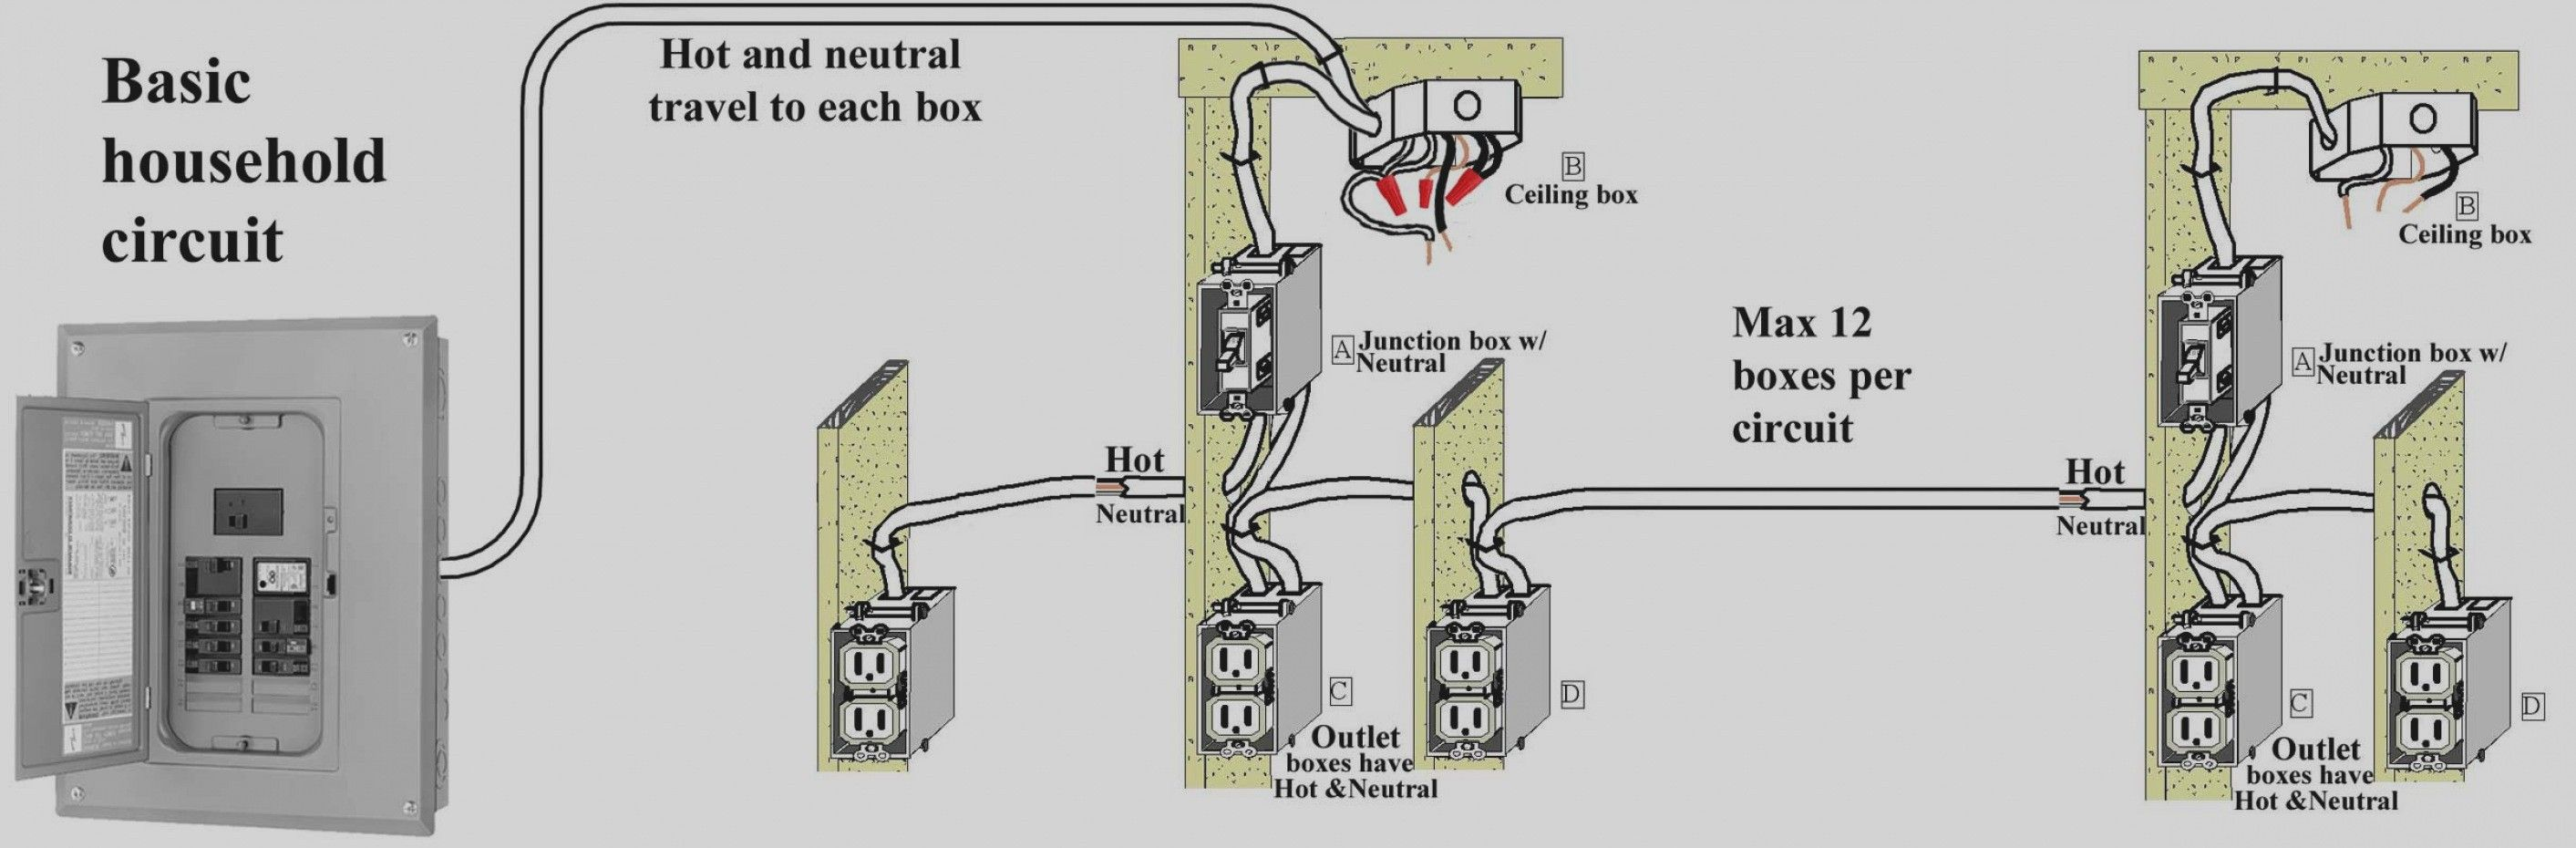 New House Wiring Circuit Diagram Diagram Wiringdiagram Diagramming Diagramm V Electrical Circuit Diagram Basic Electrical Wiring Electrical Wiring Diagram